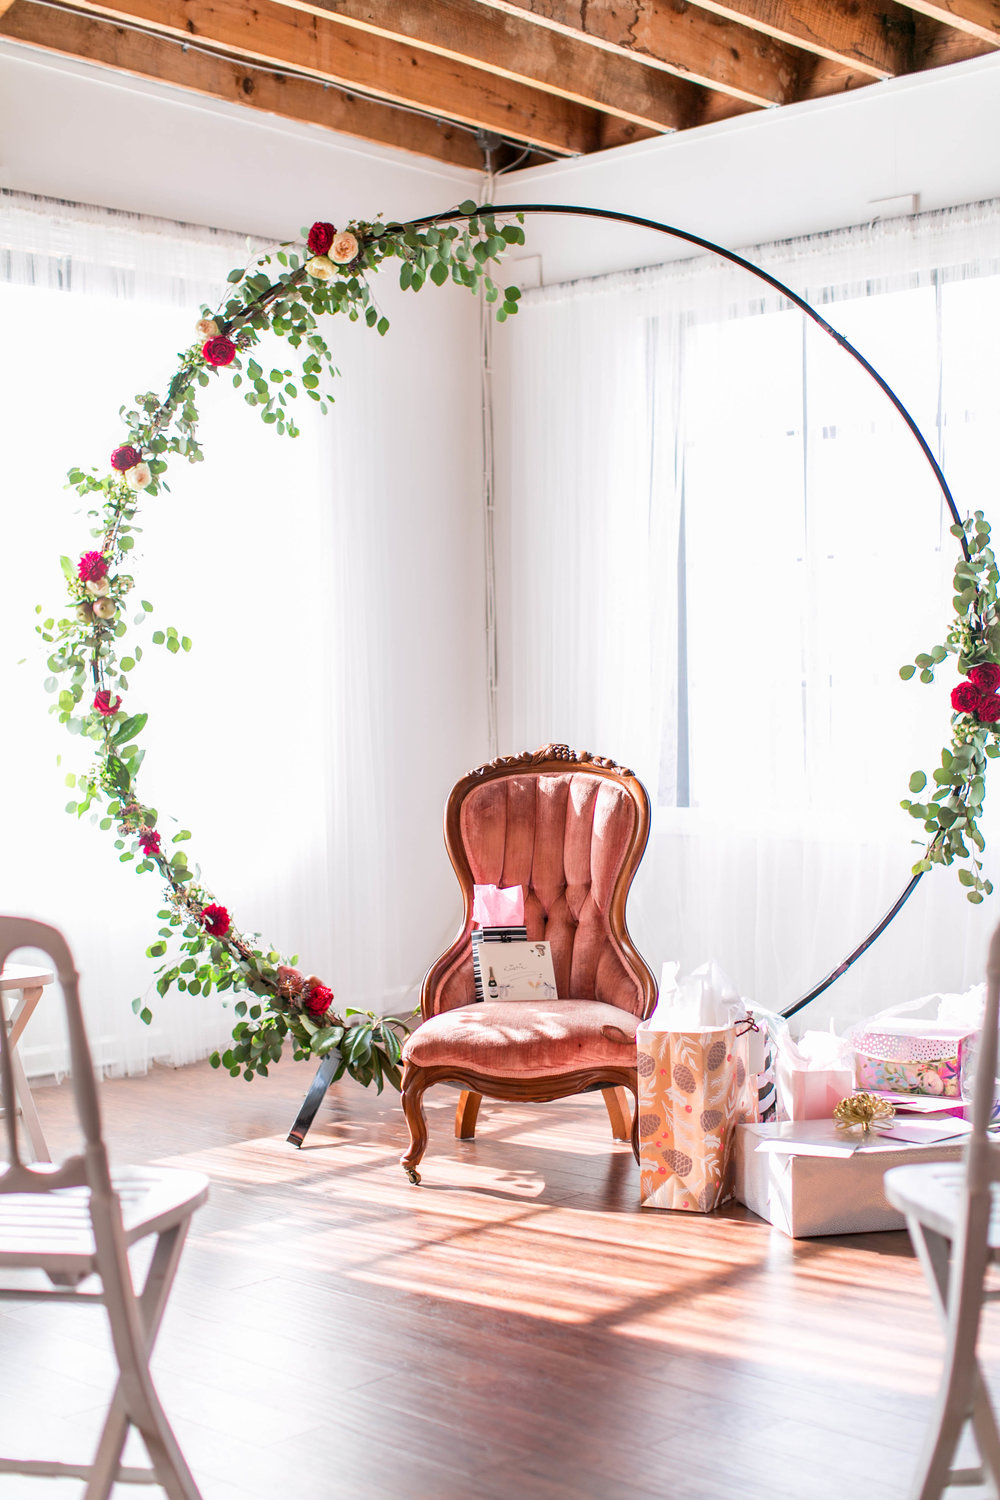 Bridal Shower Seating Area with Flowers